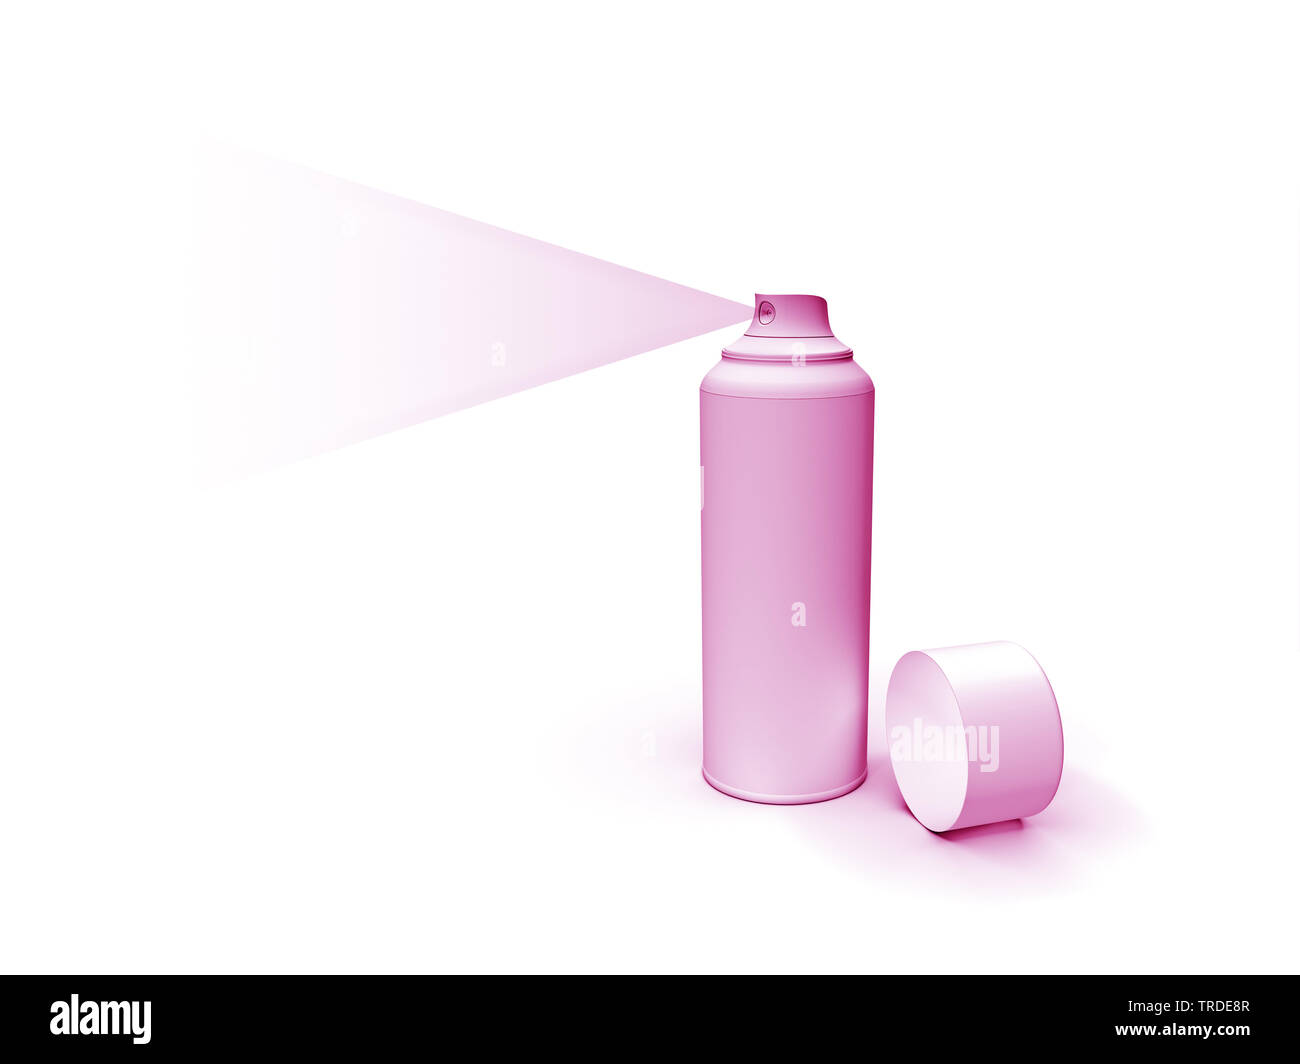 pink spray can - Stock Image